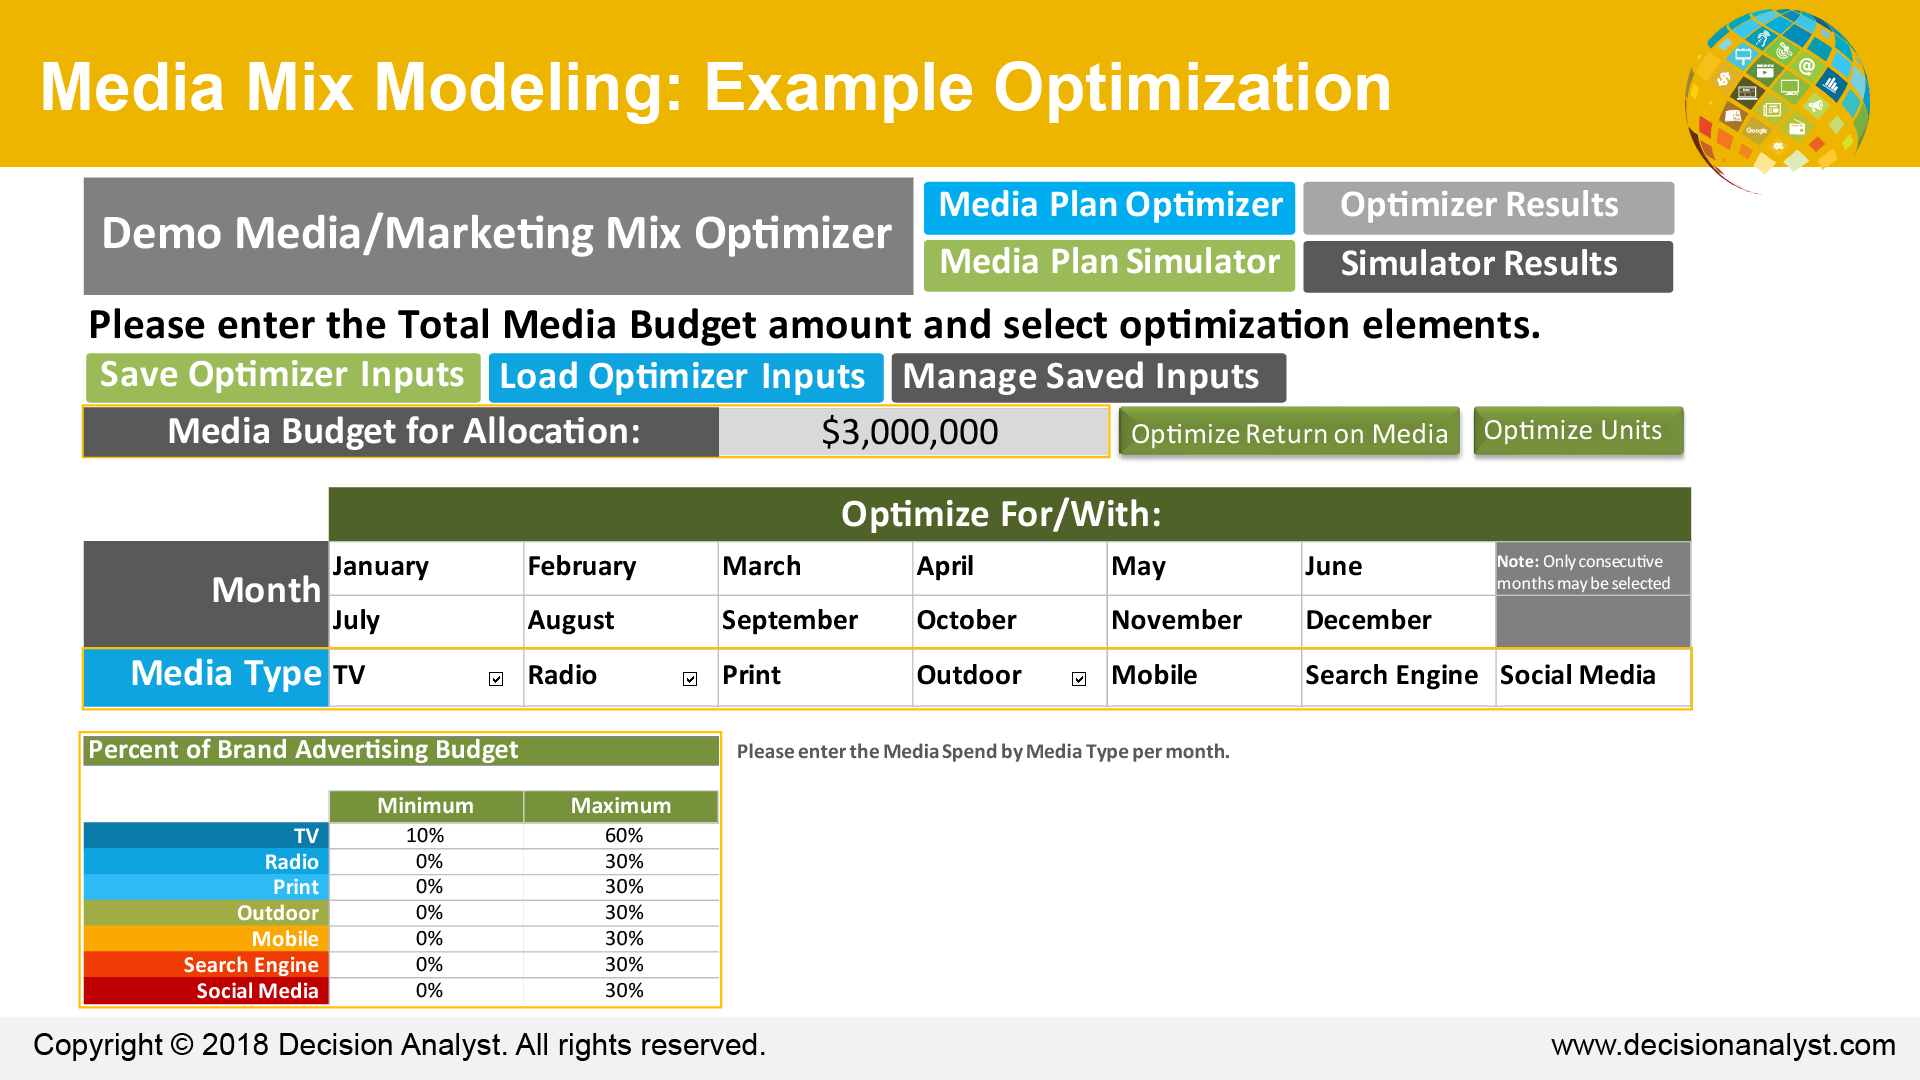 Media Mix Modeling Optimization